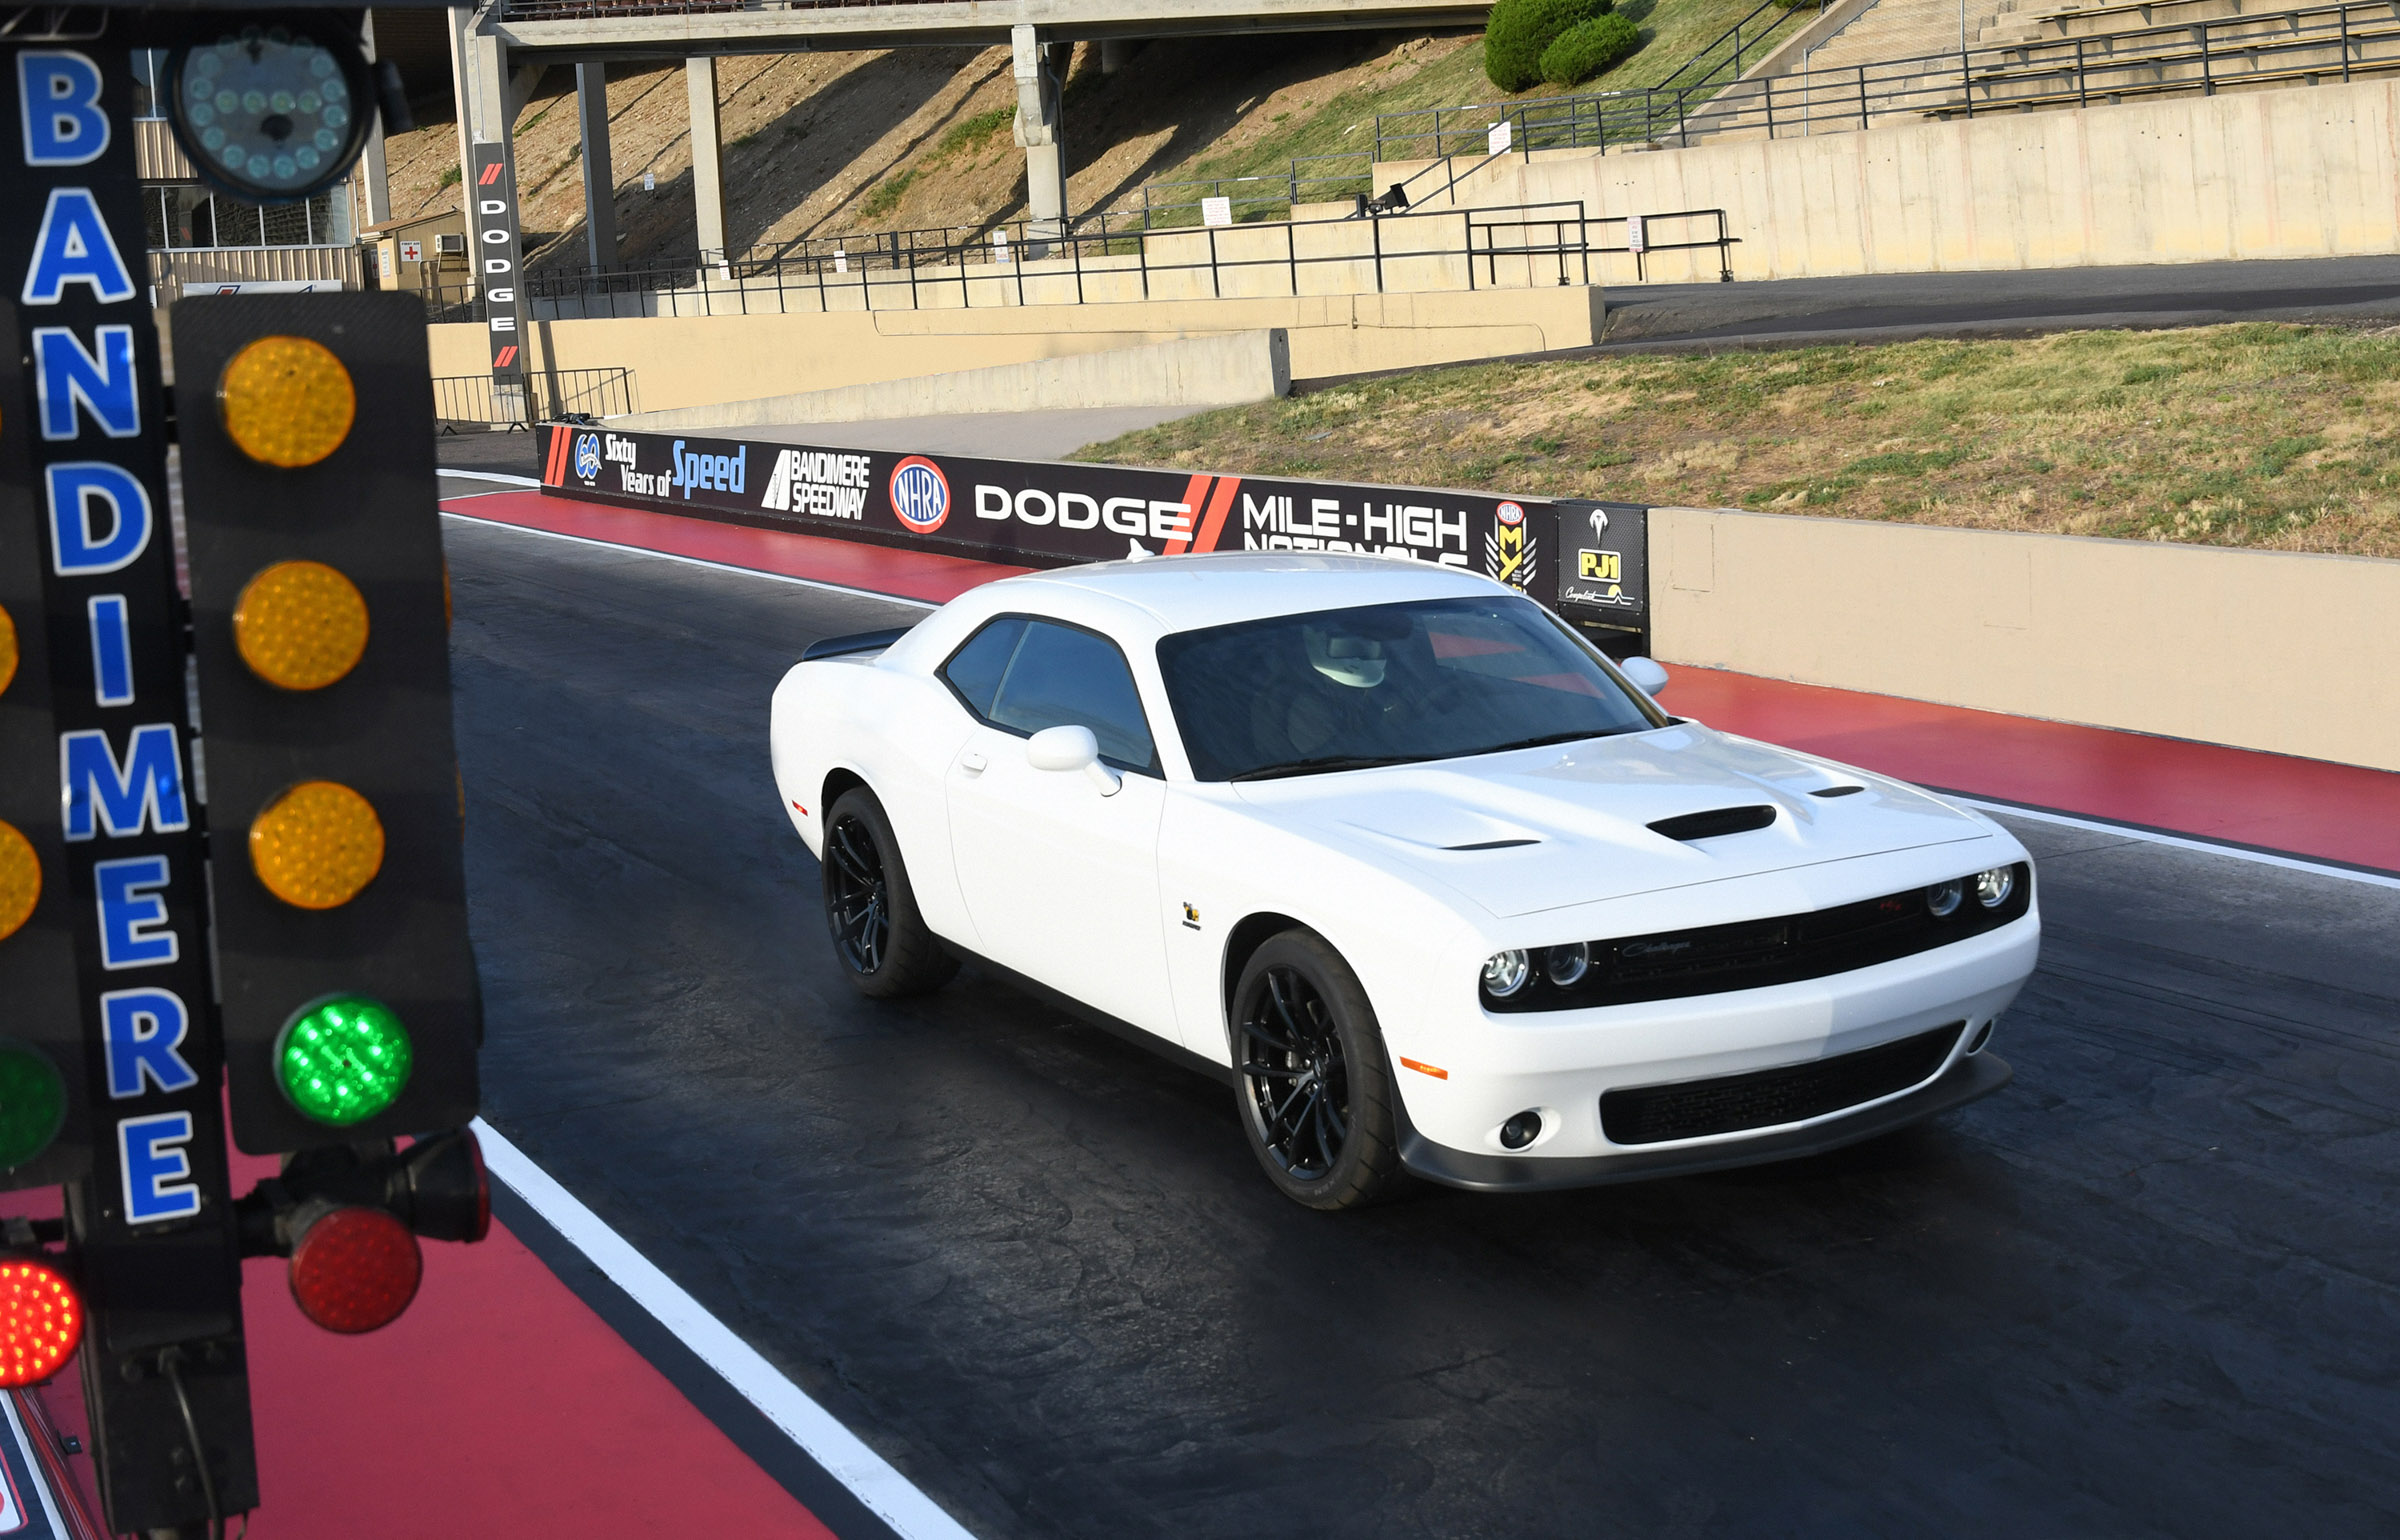 2019 Dodge Challenger R/T Scat Pack 1320 line up at start drag race